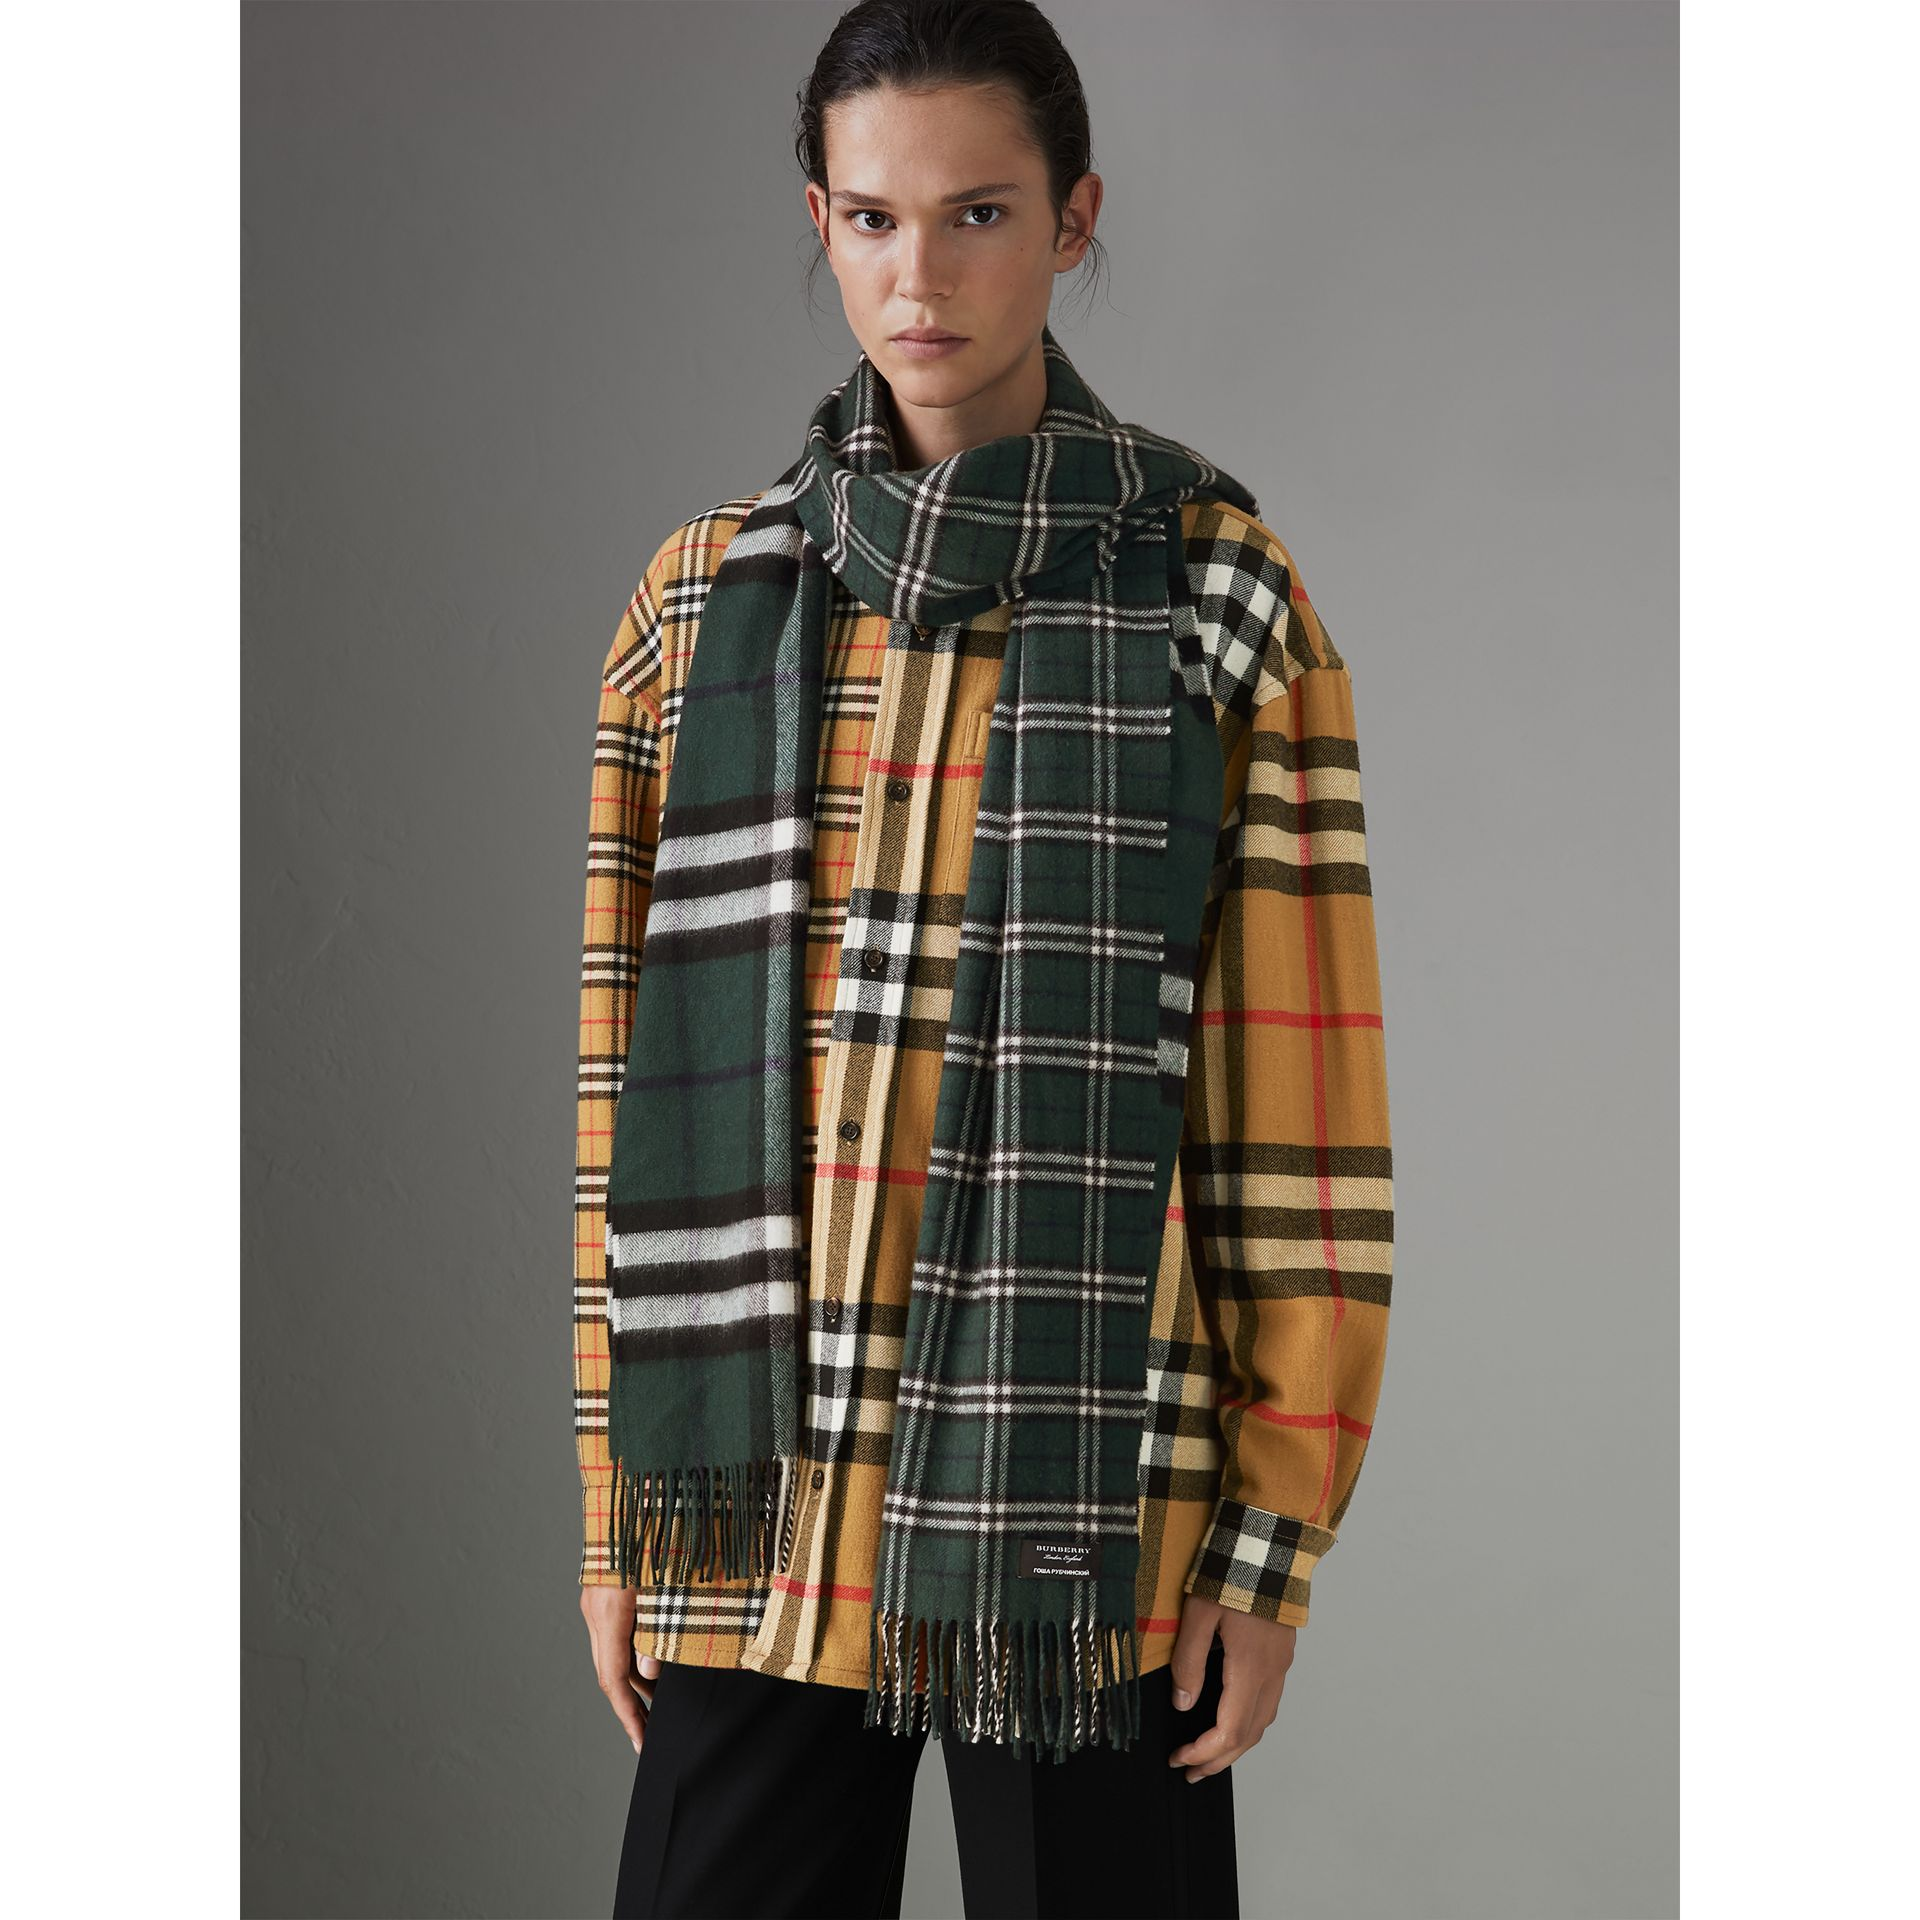 Gosha x Burberry Check Cashmere Double Scarf in Dark Forest Green | Burberry - gallery image 4